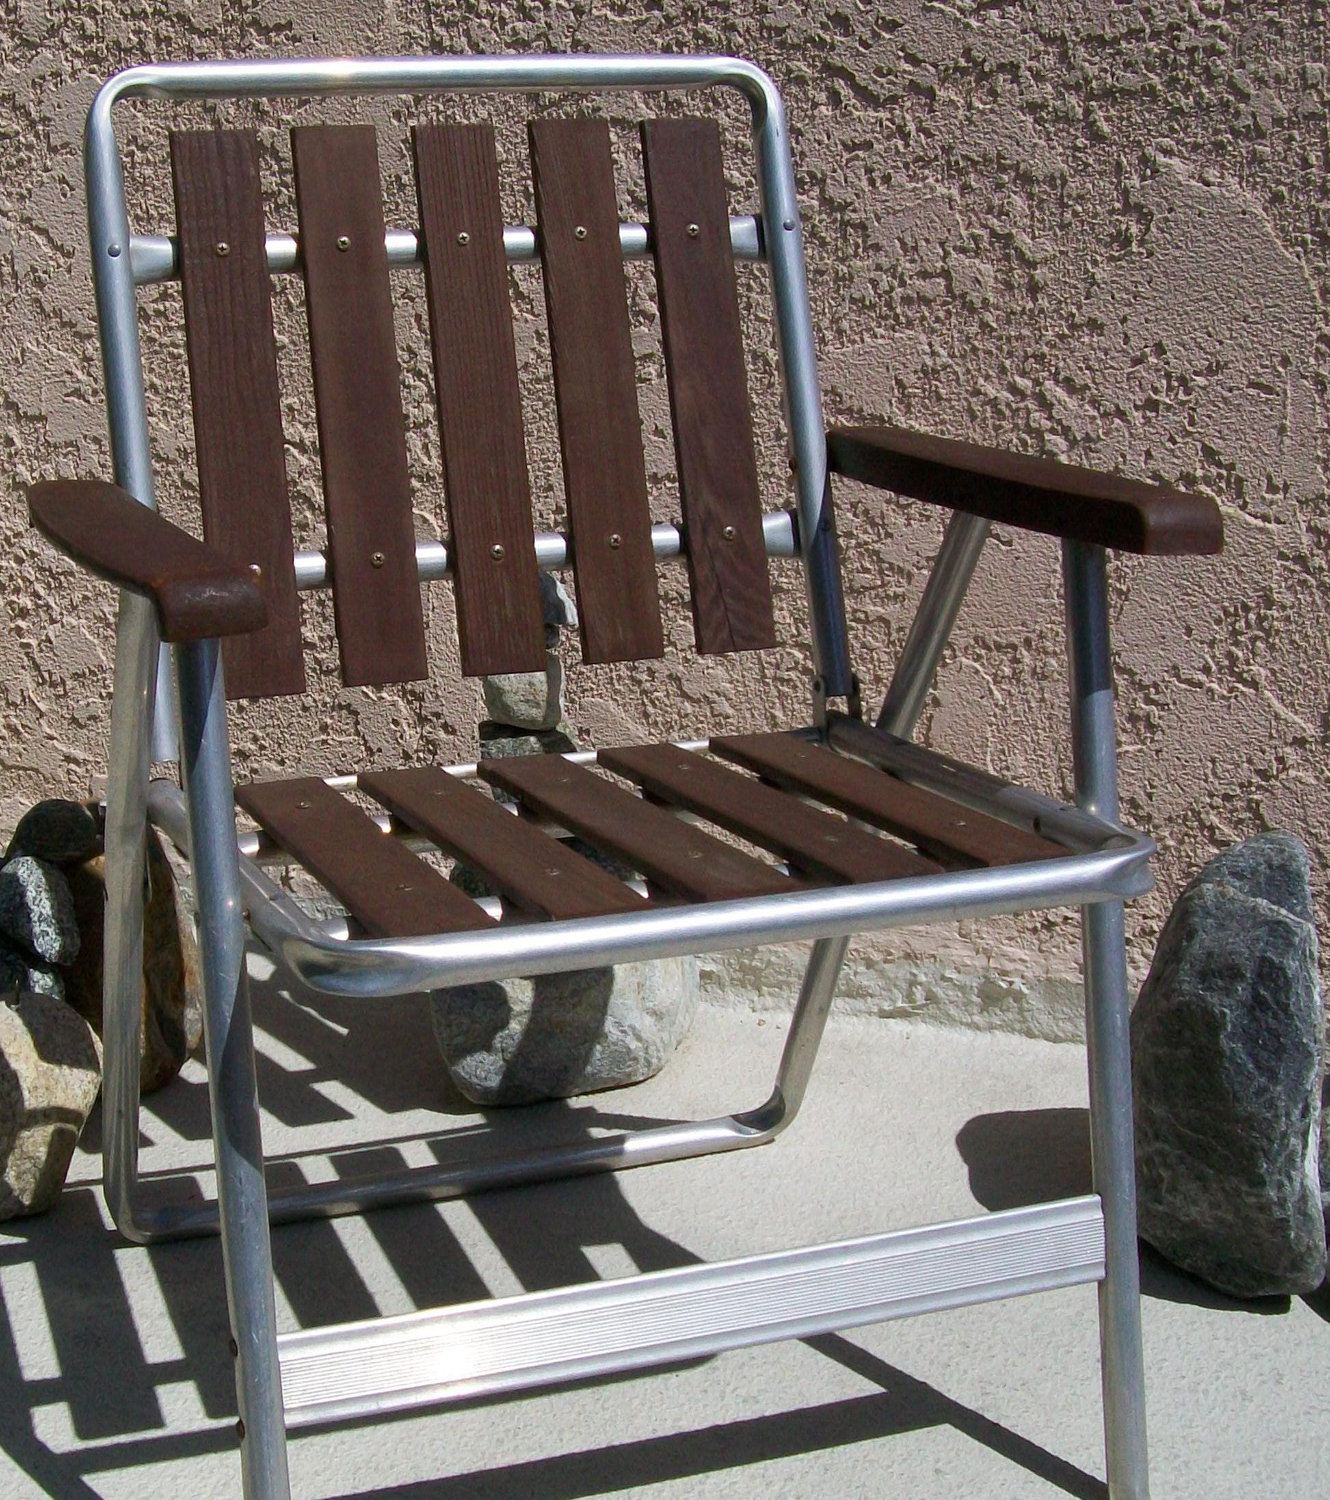 Aluminum Lawn Chairs Architecture Products Image Folding Aluminum Lawn Chair